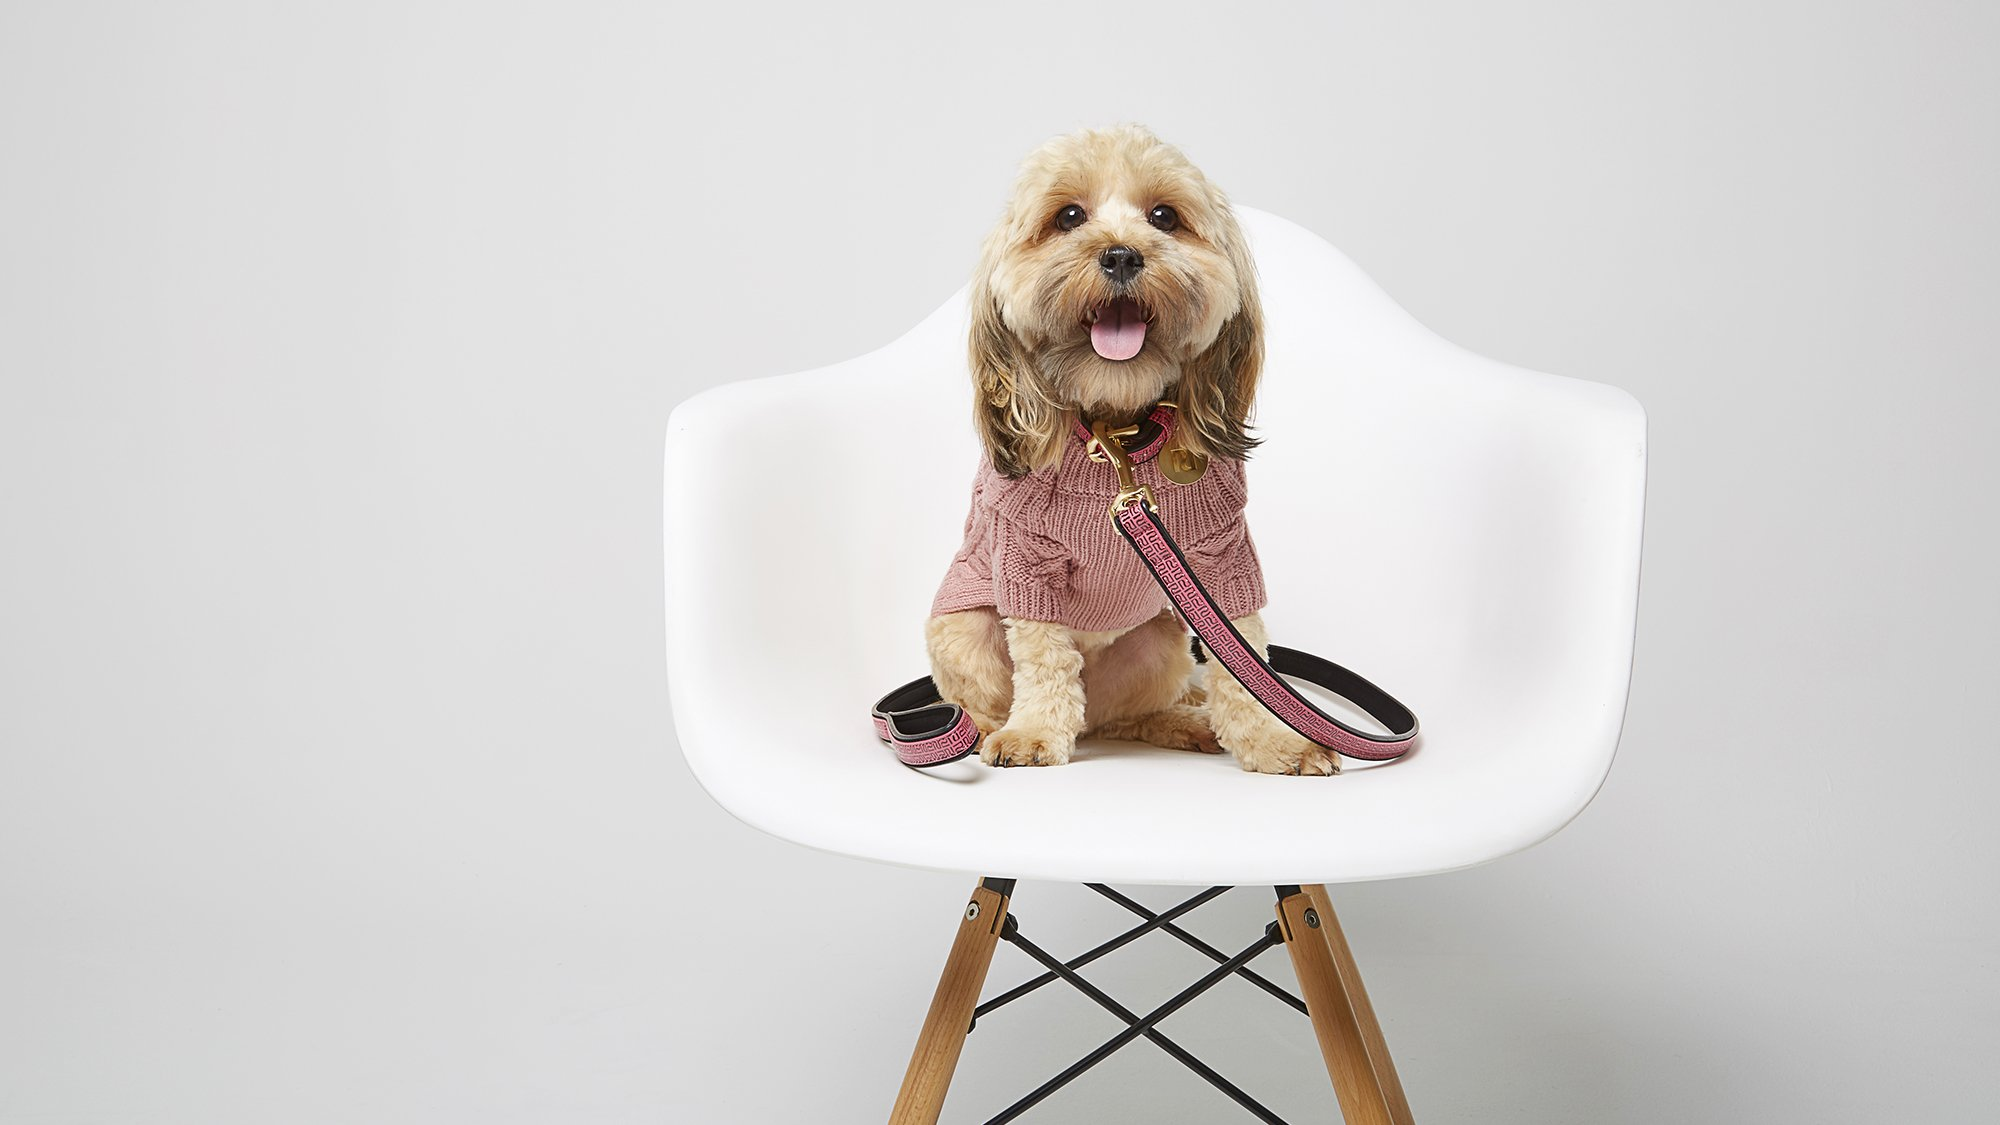 Stop everything. @riverisland now does clothes for dogs and we want it all https://t.co/bRwzqT30TU https://t.co/PSJLuwDgRM